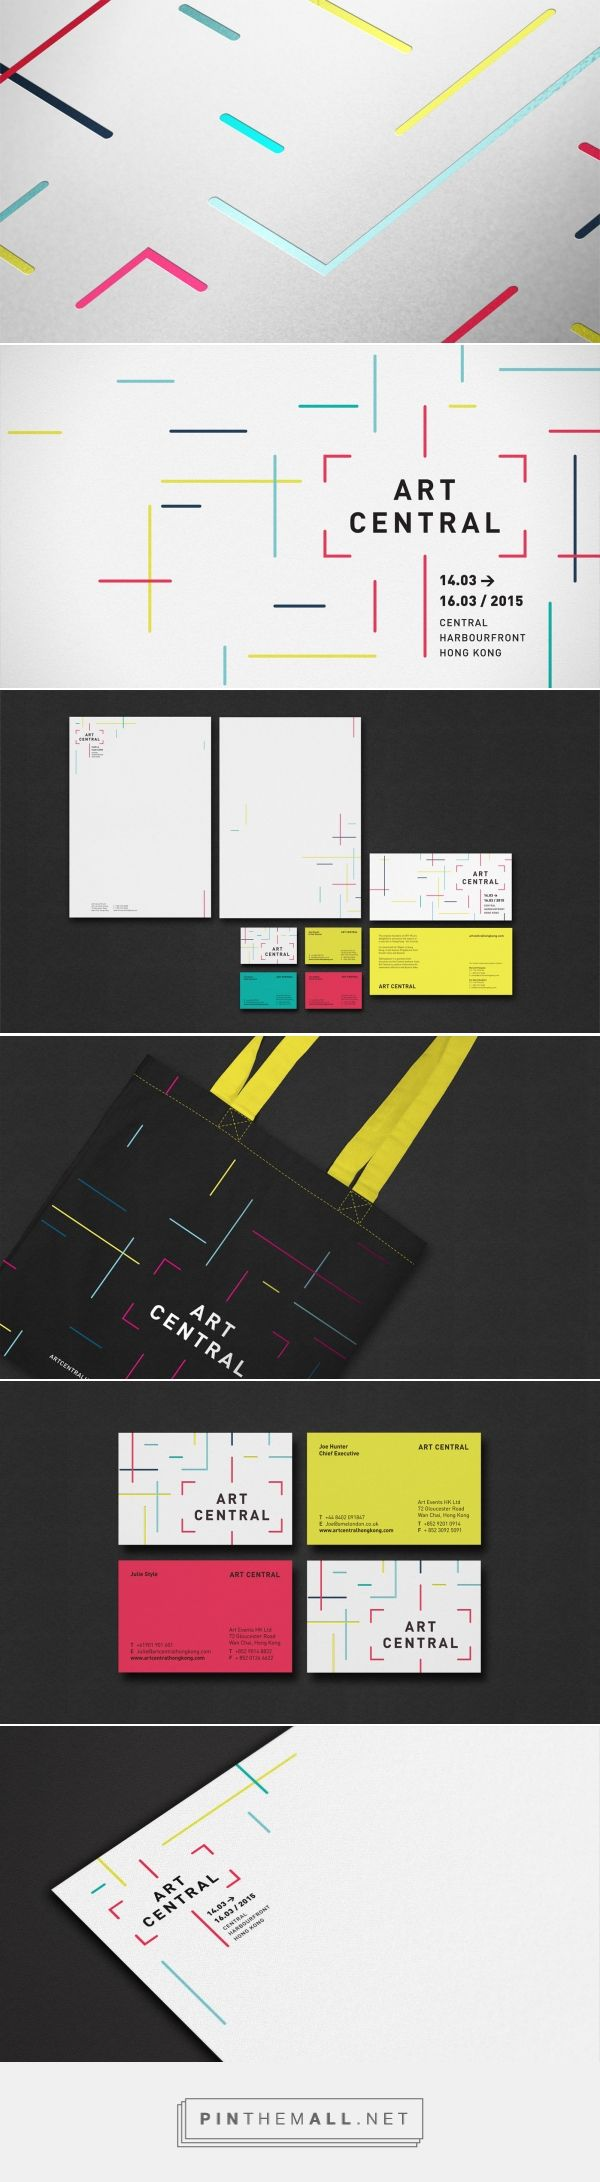 Art Central Branding by The Plant | Fivestar Branding – Design and Branding Agency & Inspiration Gallery